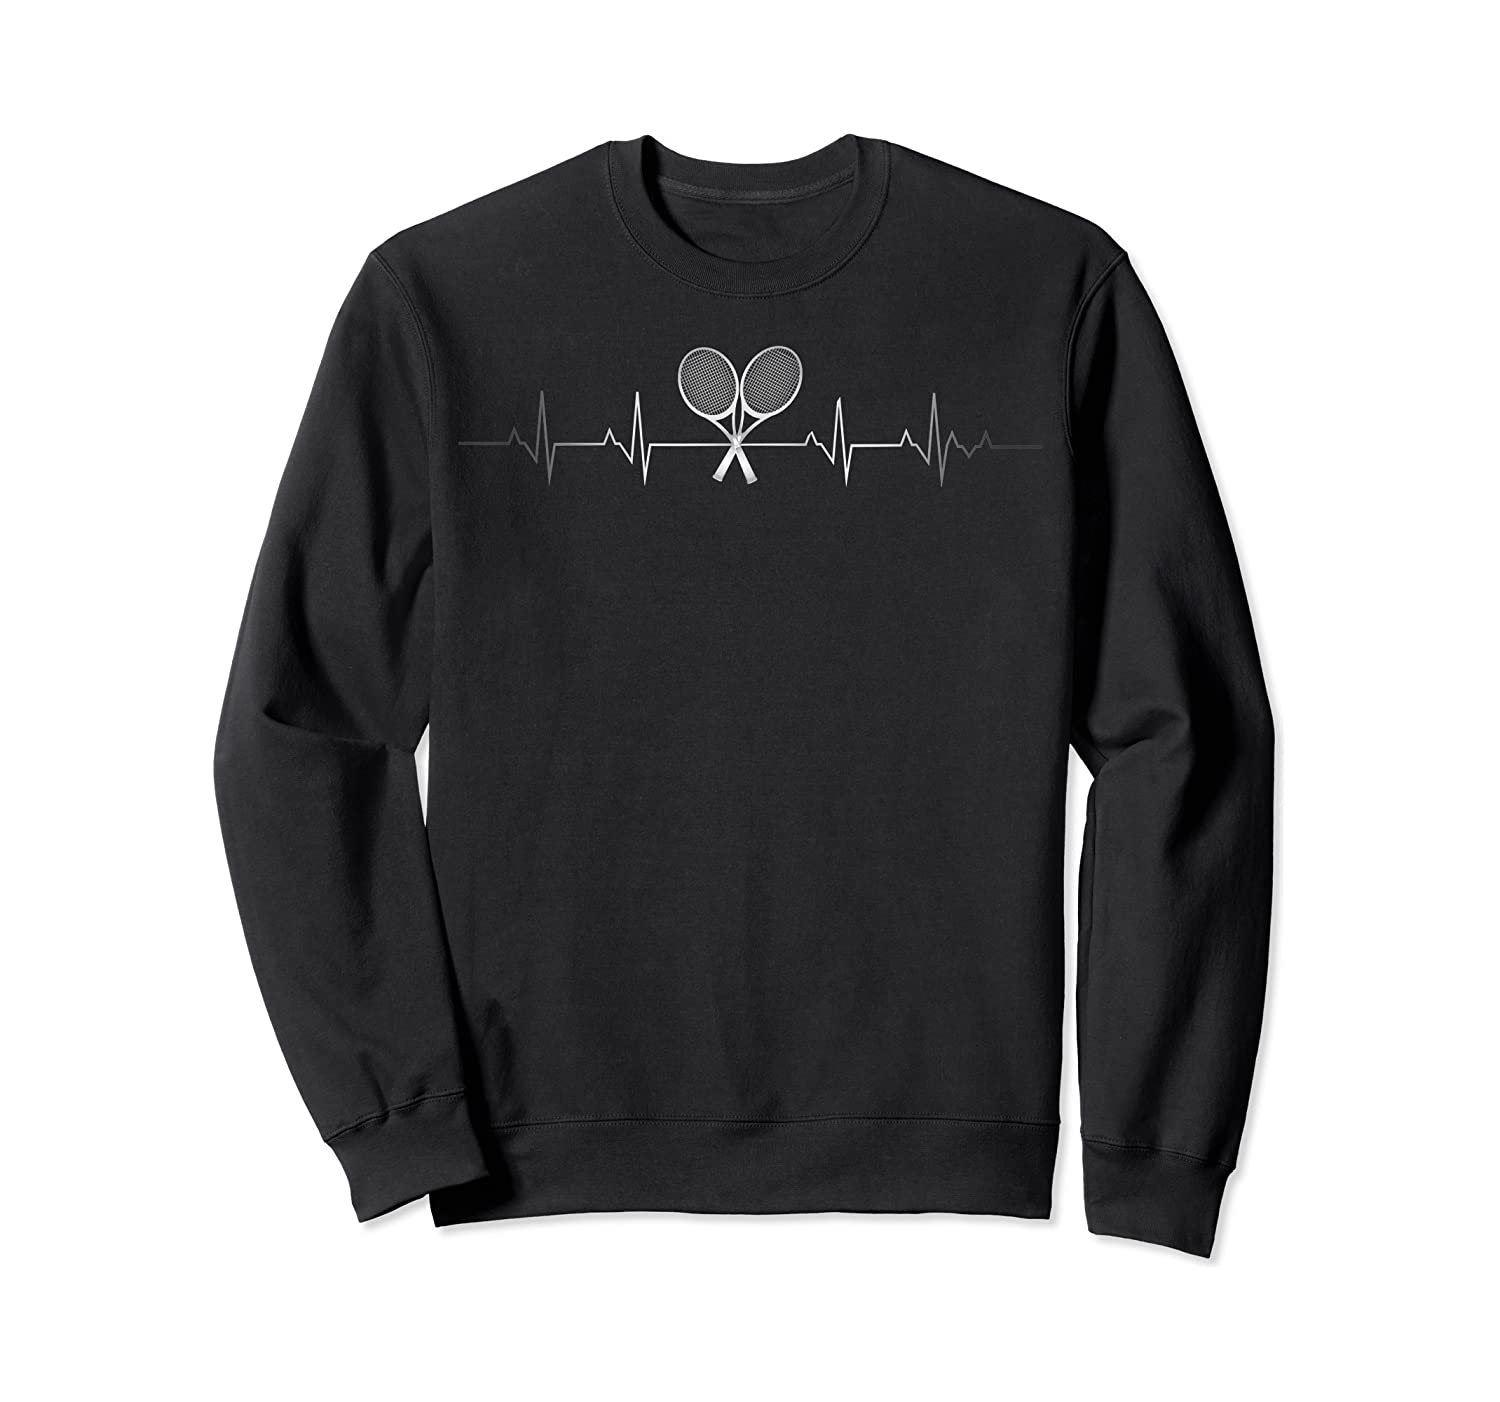 Tennis Heartbeat Gift Funny Tennis Player Lover Shirts Crewneck Sweater